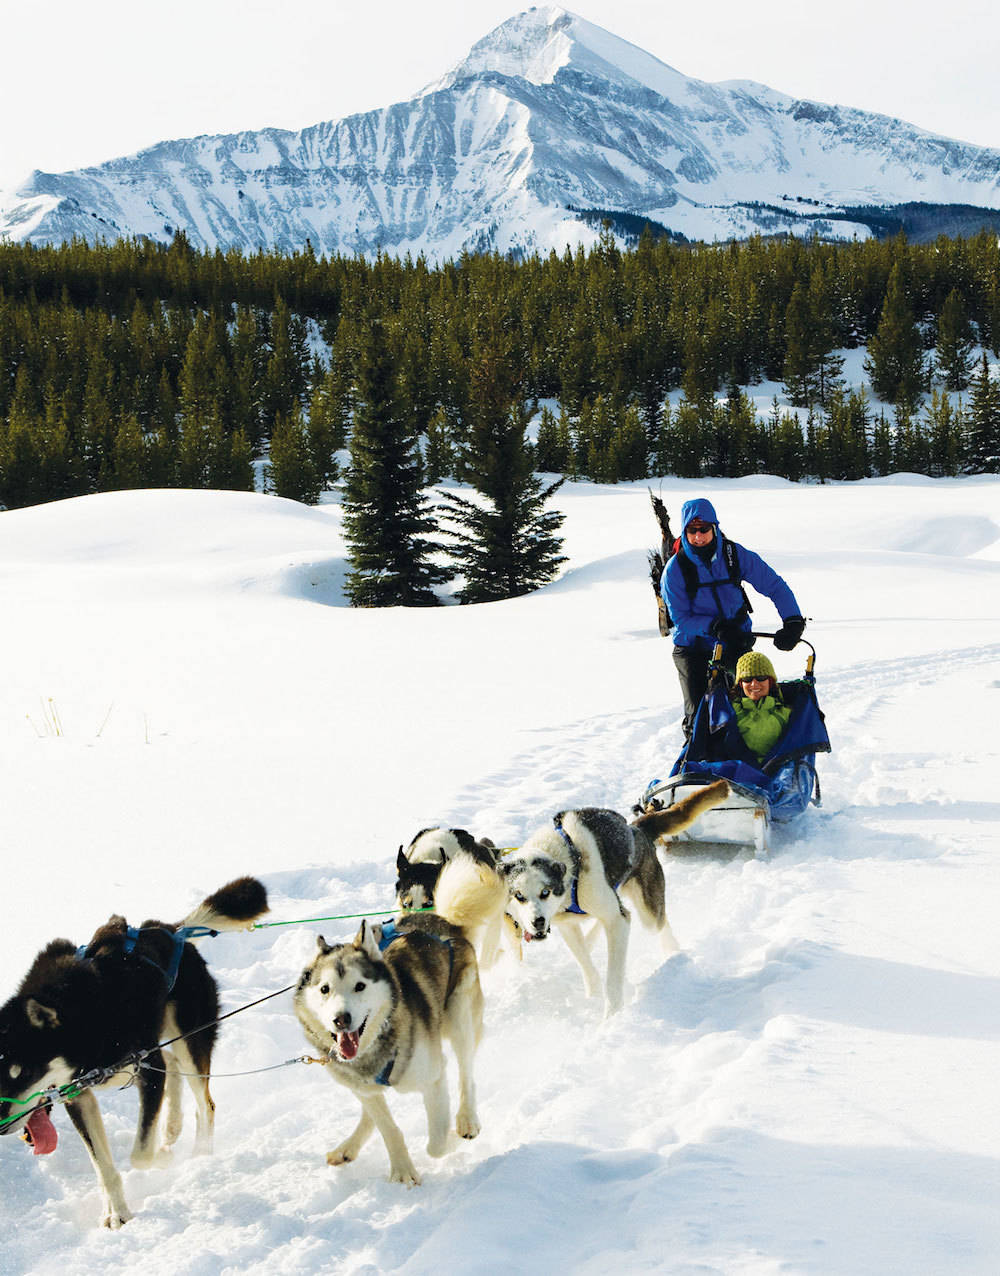 Group of snow dogs pulling a ski sled